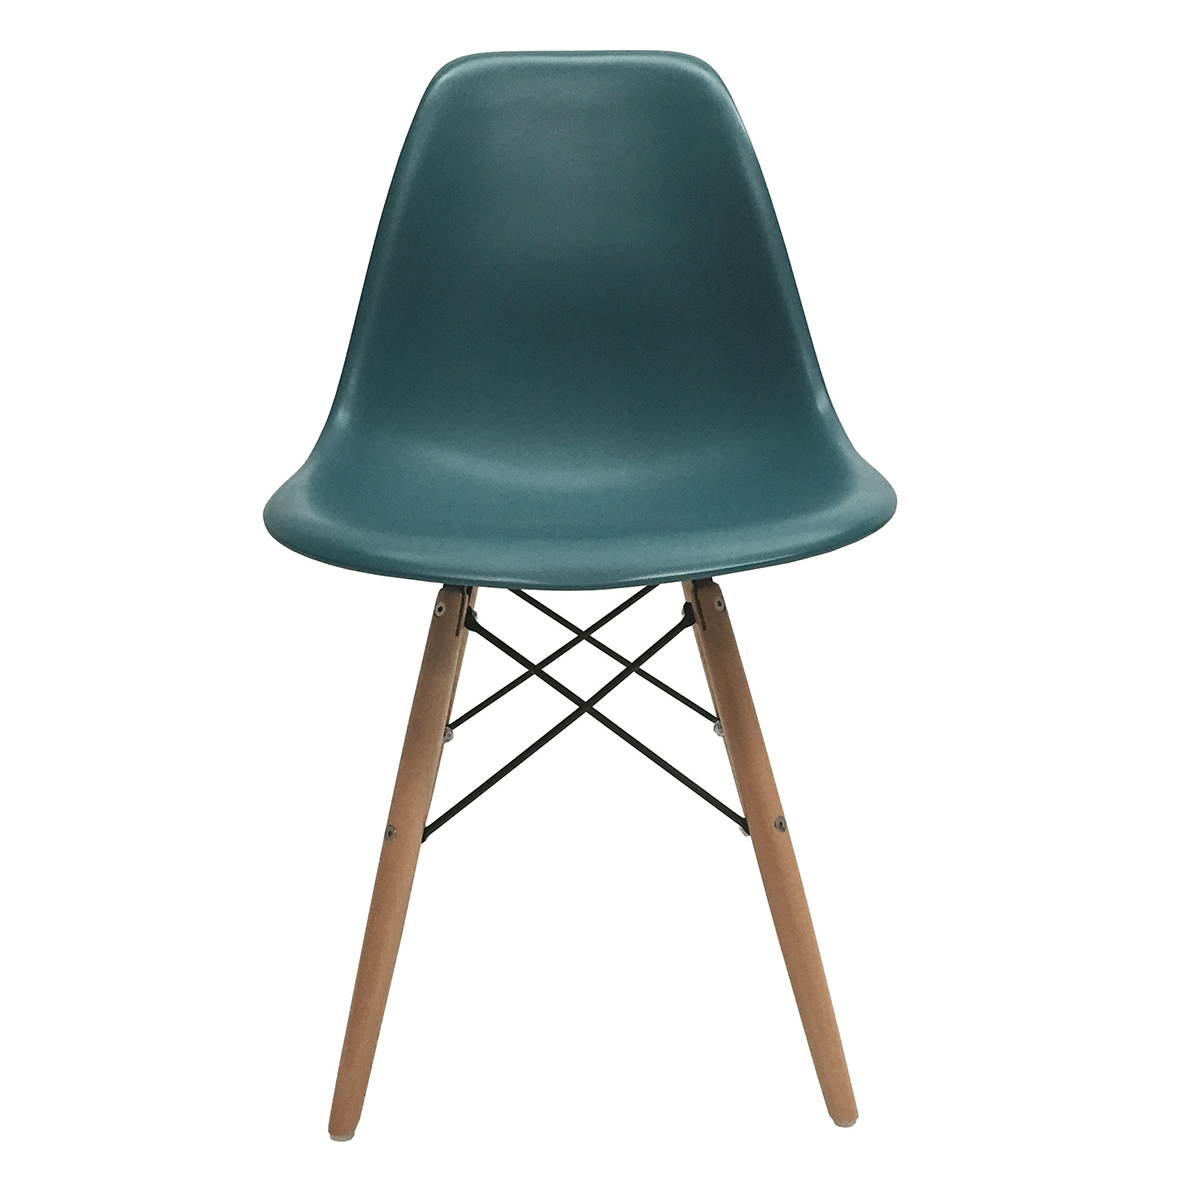 4 new turquoise eames style dsw wood leg side dining chair mid century modern ebay. Black Bedroom Furniture Sets. Home Design Ideas